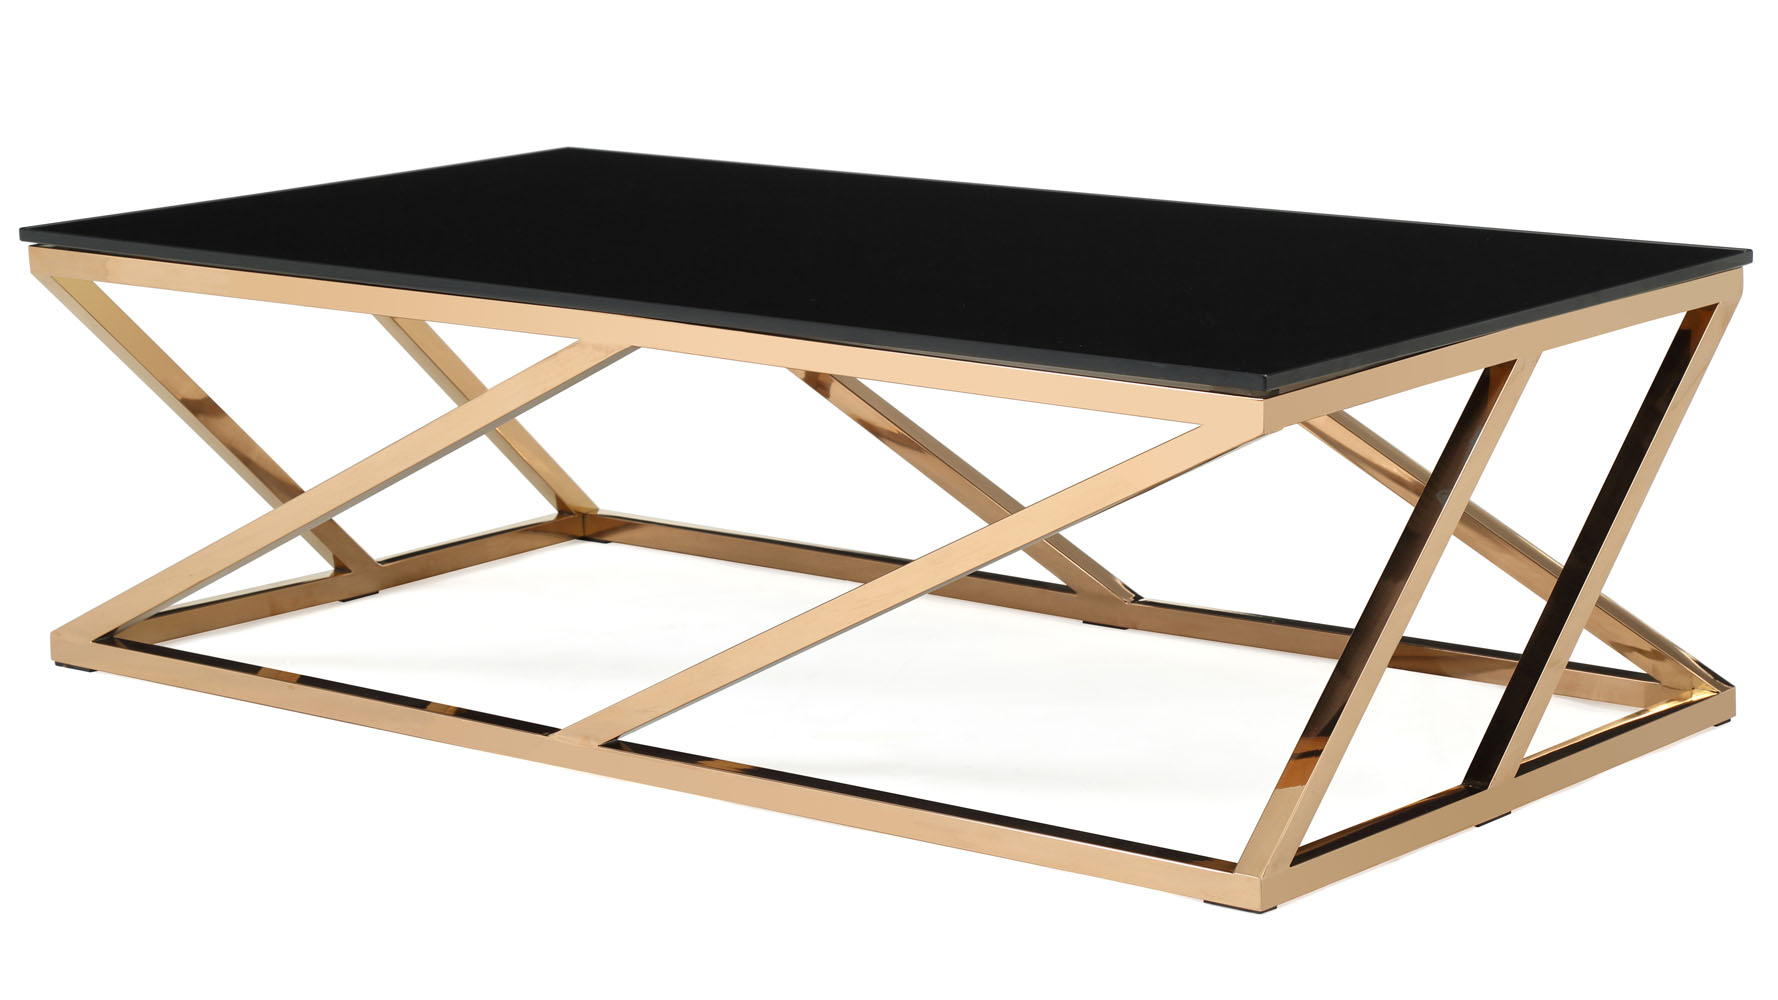 Modern rose gold and black glass geo coffee table zuri furniture Geo glass coffee table